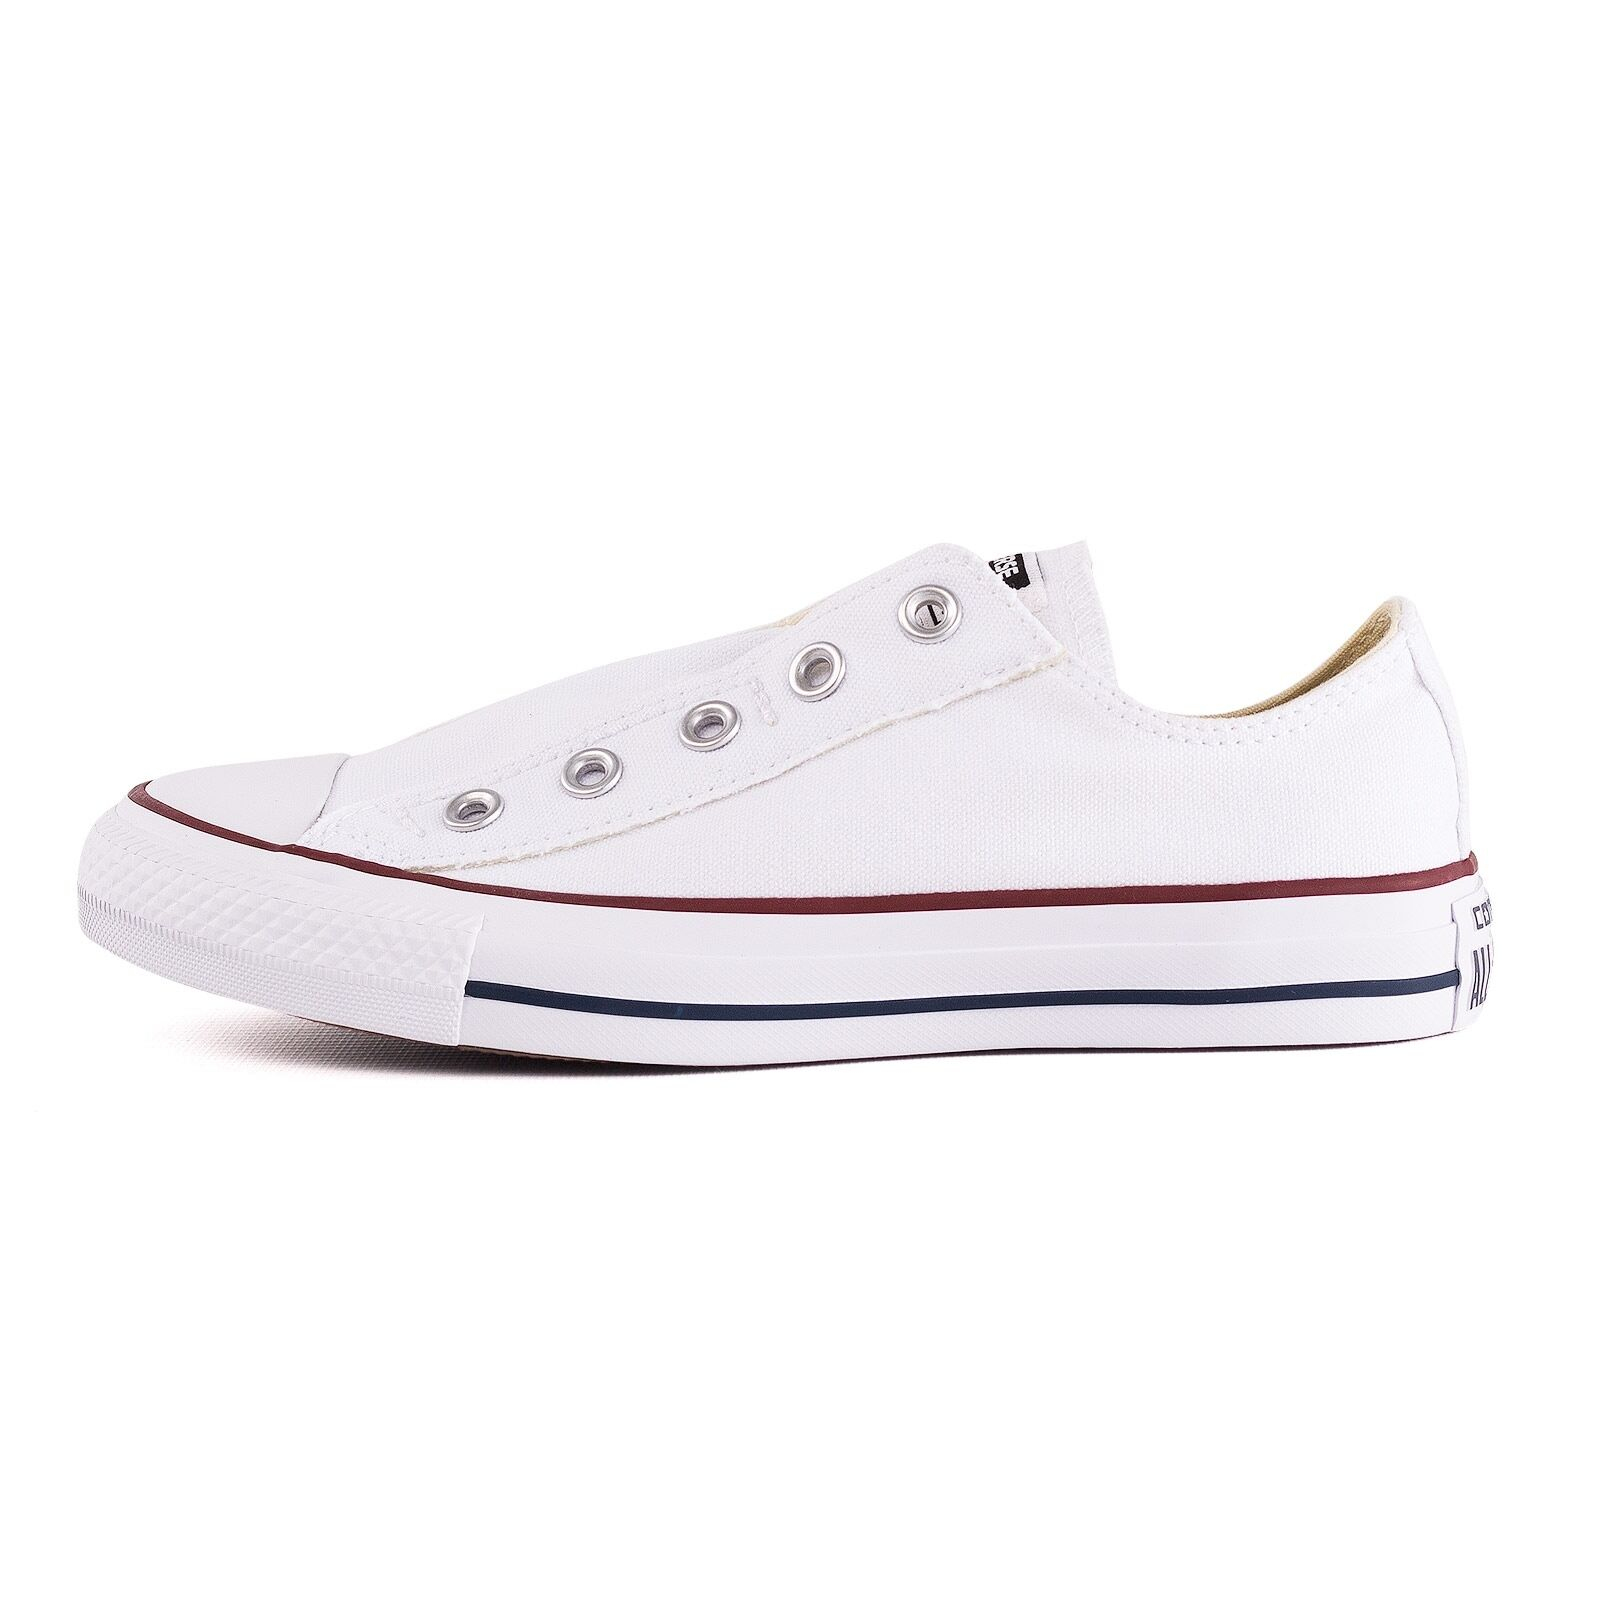 Converse CT AS Slip Schuhe Unisex Sneaker, white, 51232